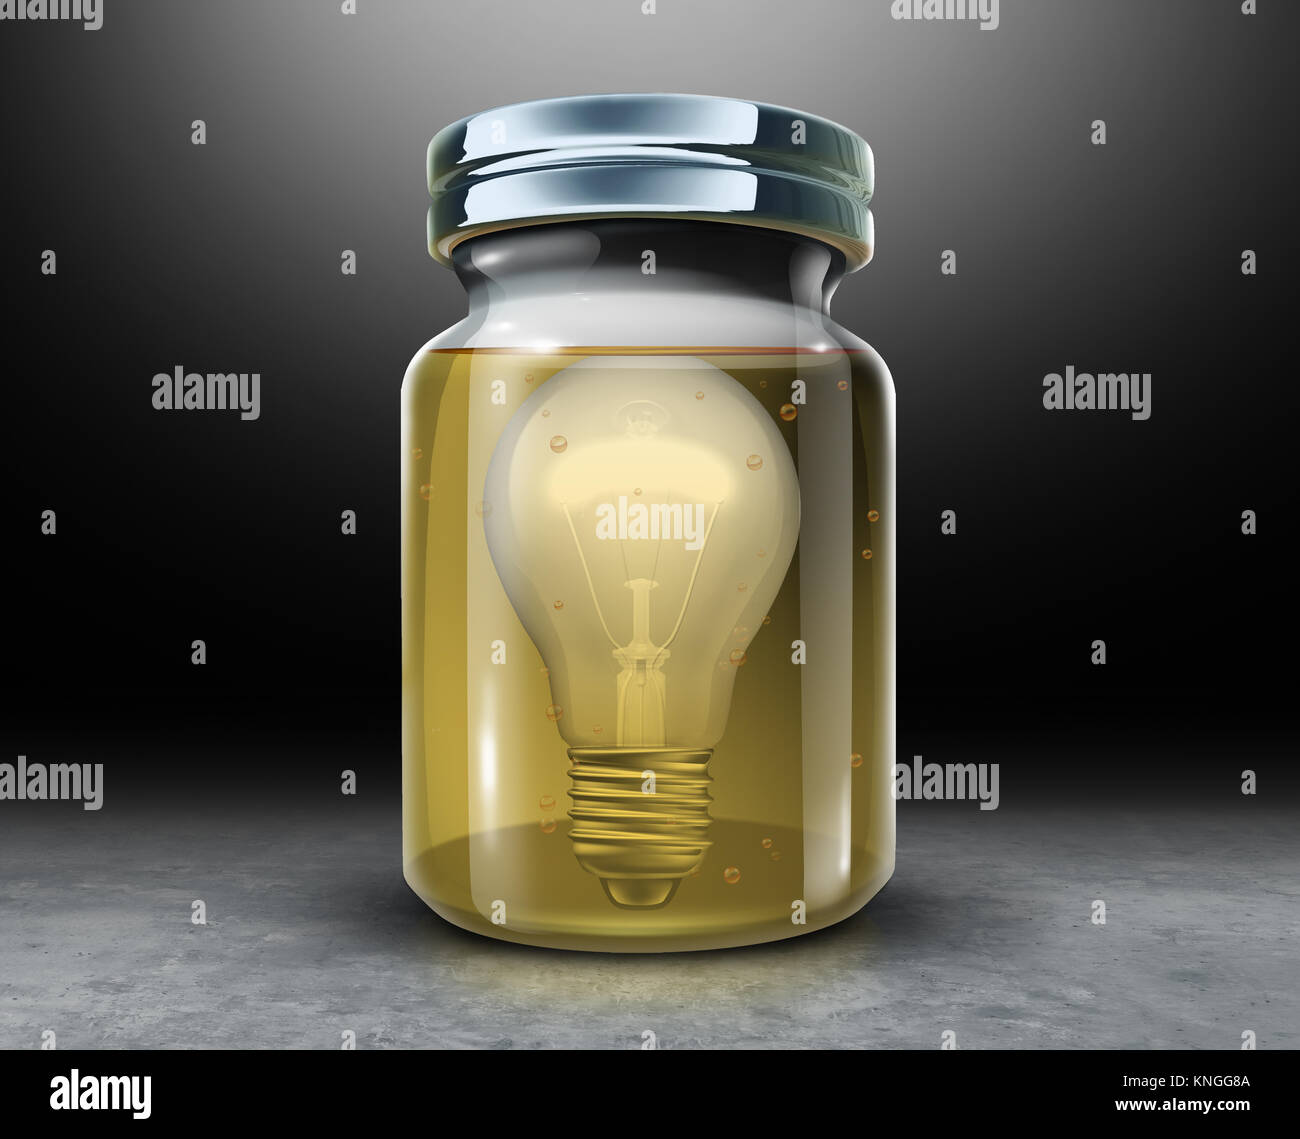 Preserve creativity concept and preserving intellectual property symbol as a light bulb inside a jar with preservative - Stock Image